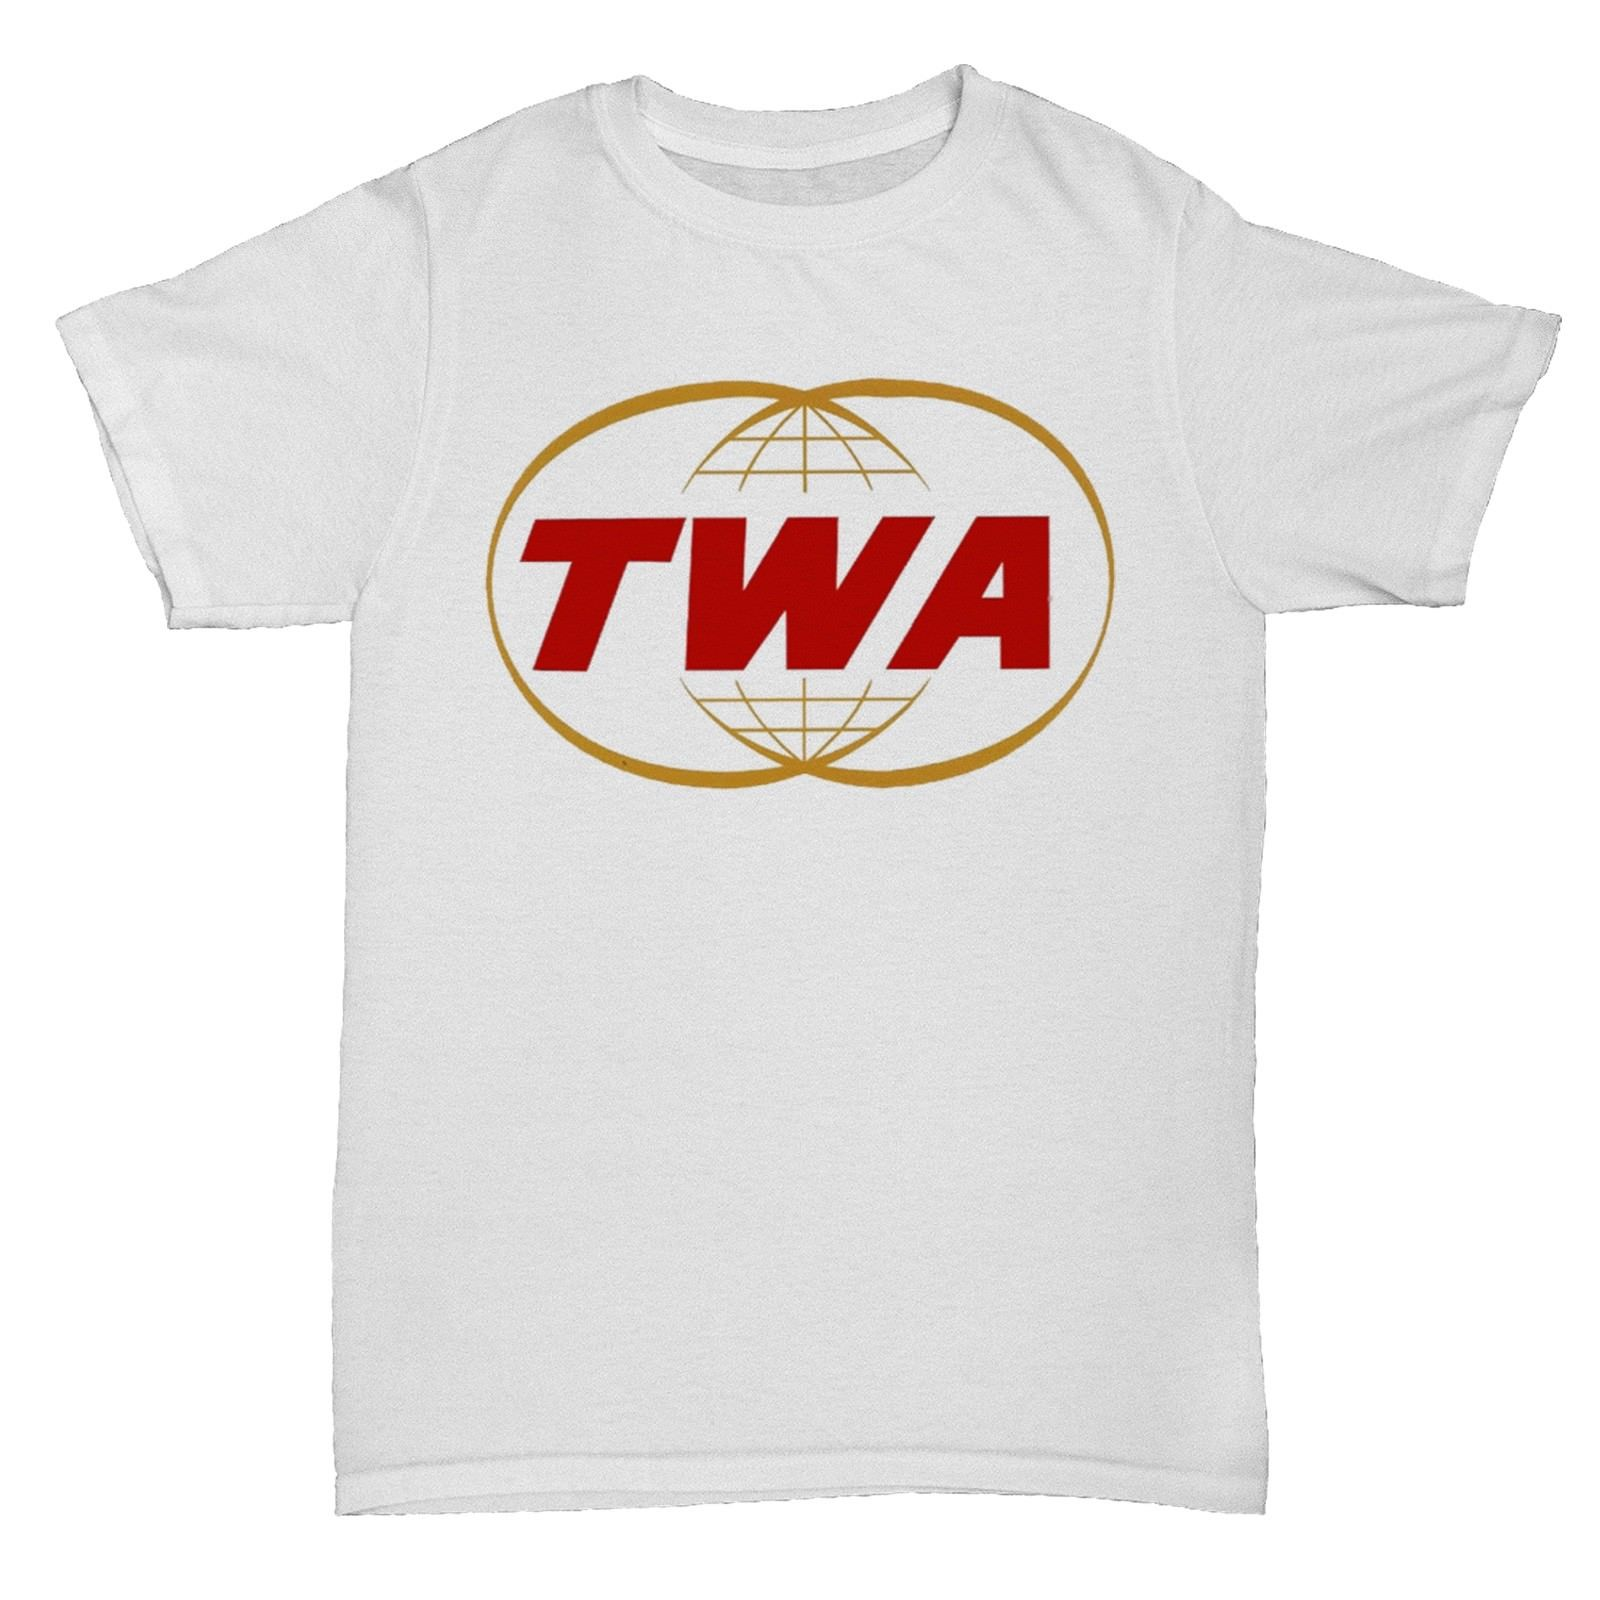 TWA TRANS AIRWAYS BA AIRLINES RETRO AEROPLANE BOAC PAN AM T SHIRT Print T-Shirt Harajuku Short Sleeve Men Top